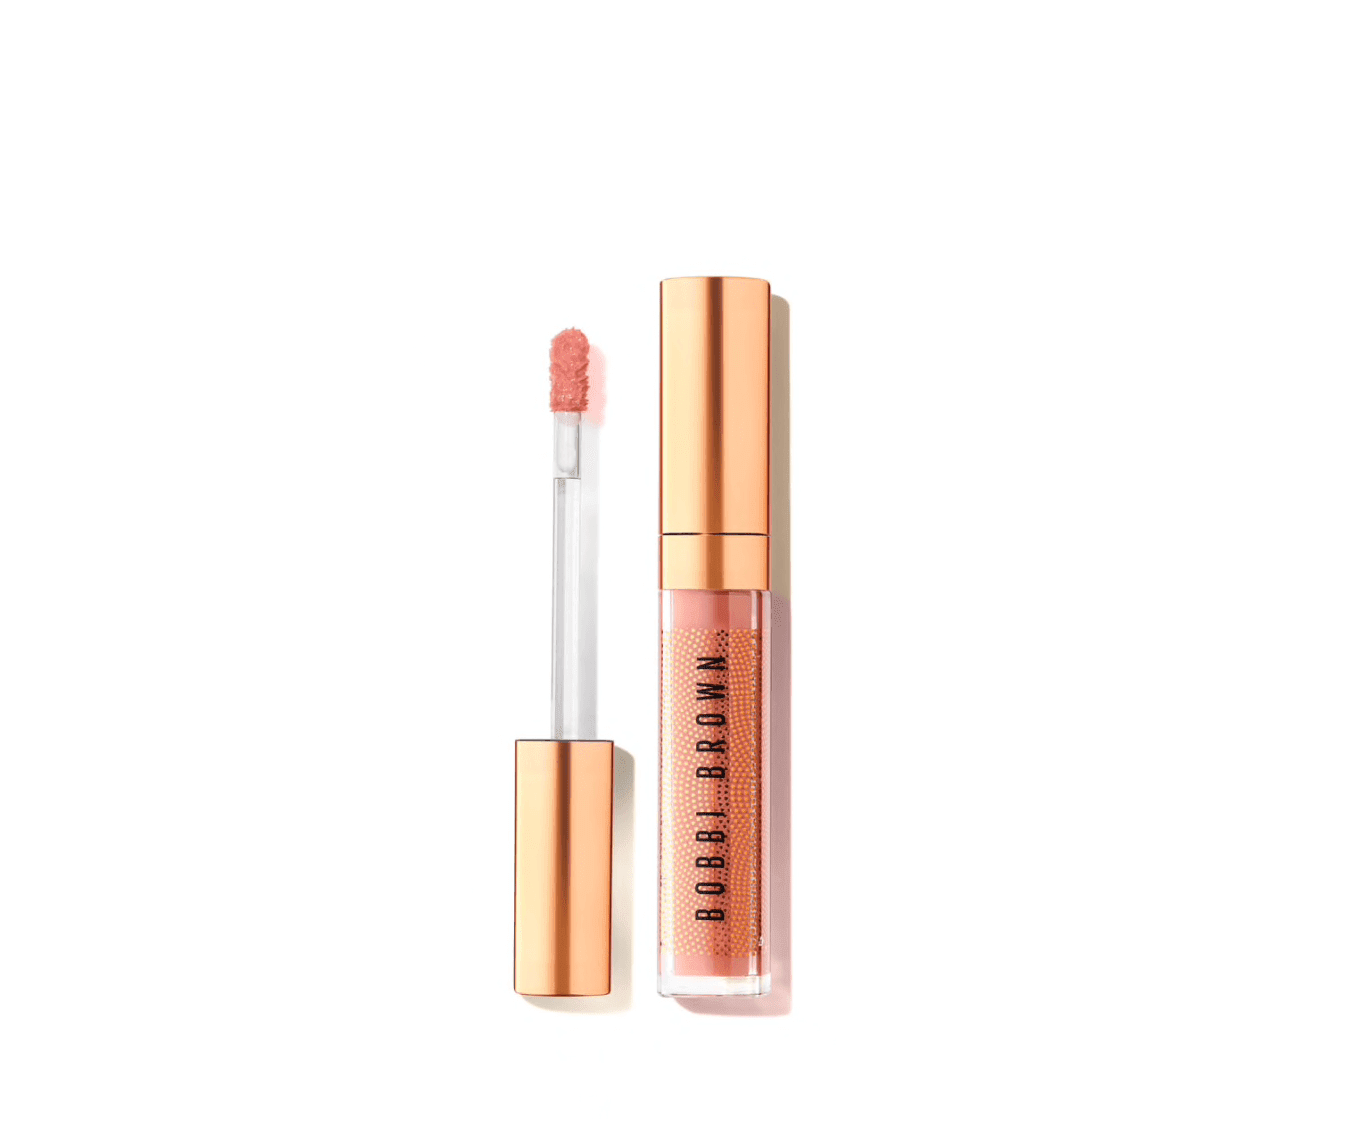 Bobbi Brown Maquillage été 2020 Pink Sunset